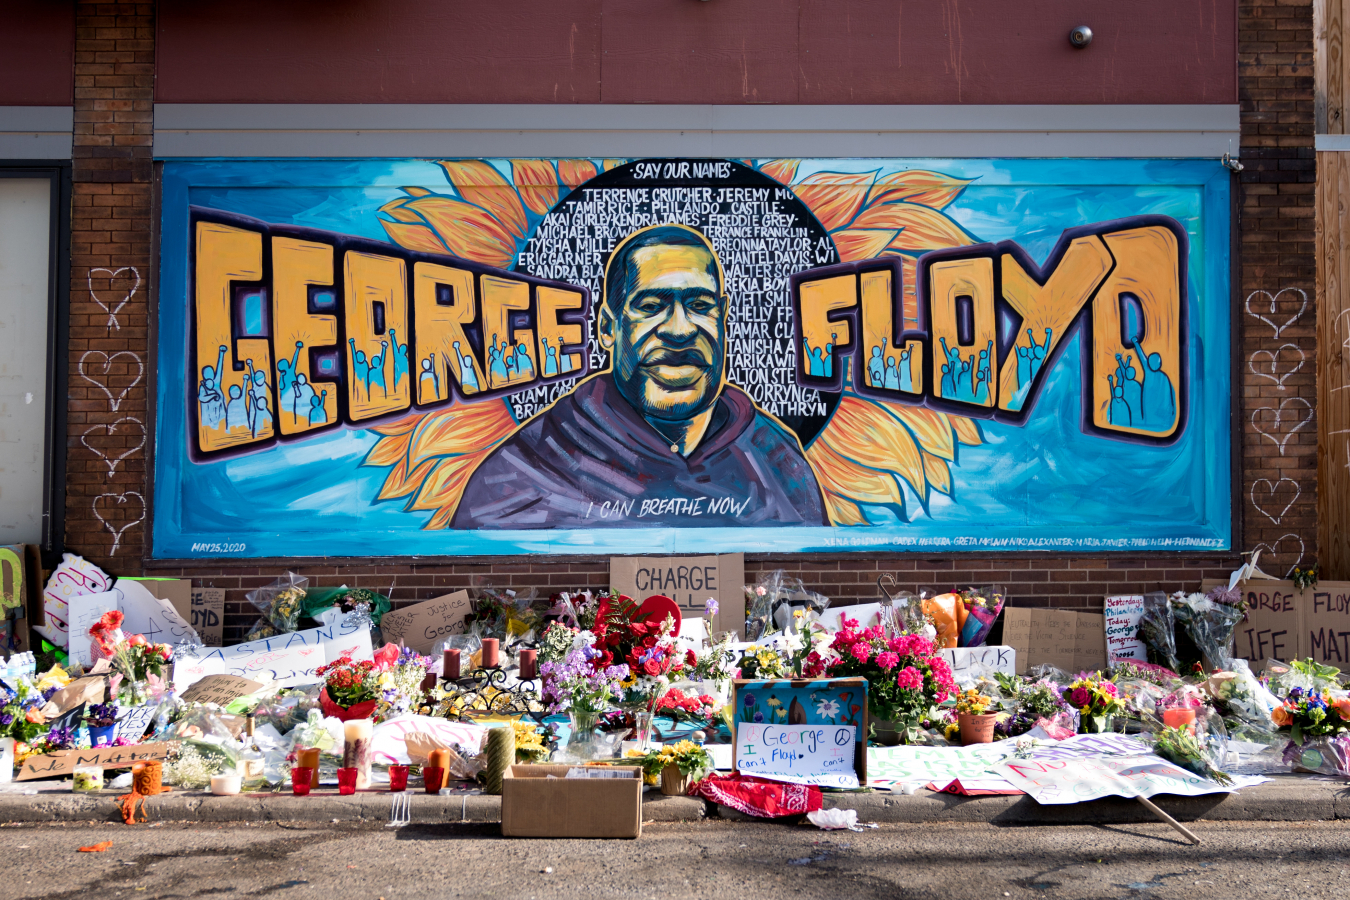 The George Floyd mural outside Cup Foods at Chicago Ave and E 38th St in Minneapolis, Minnesota